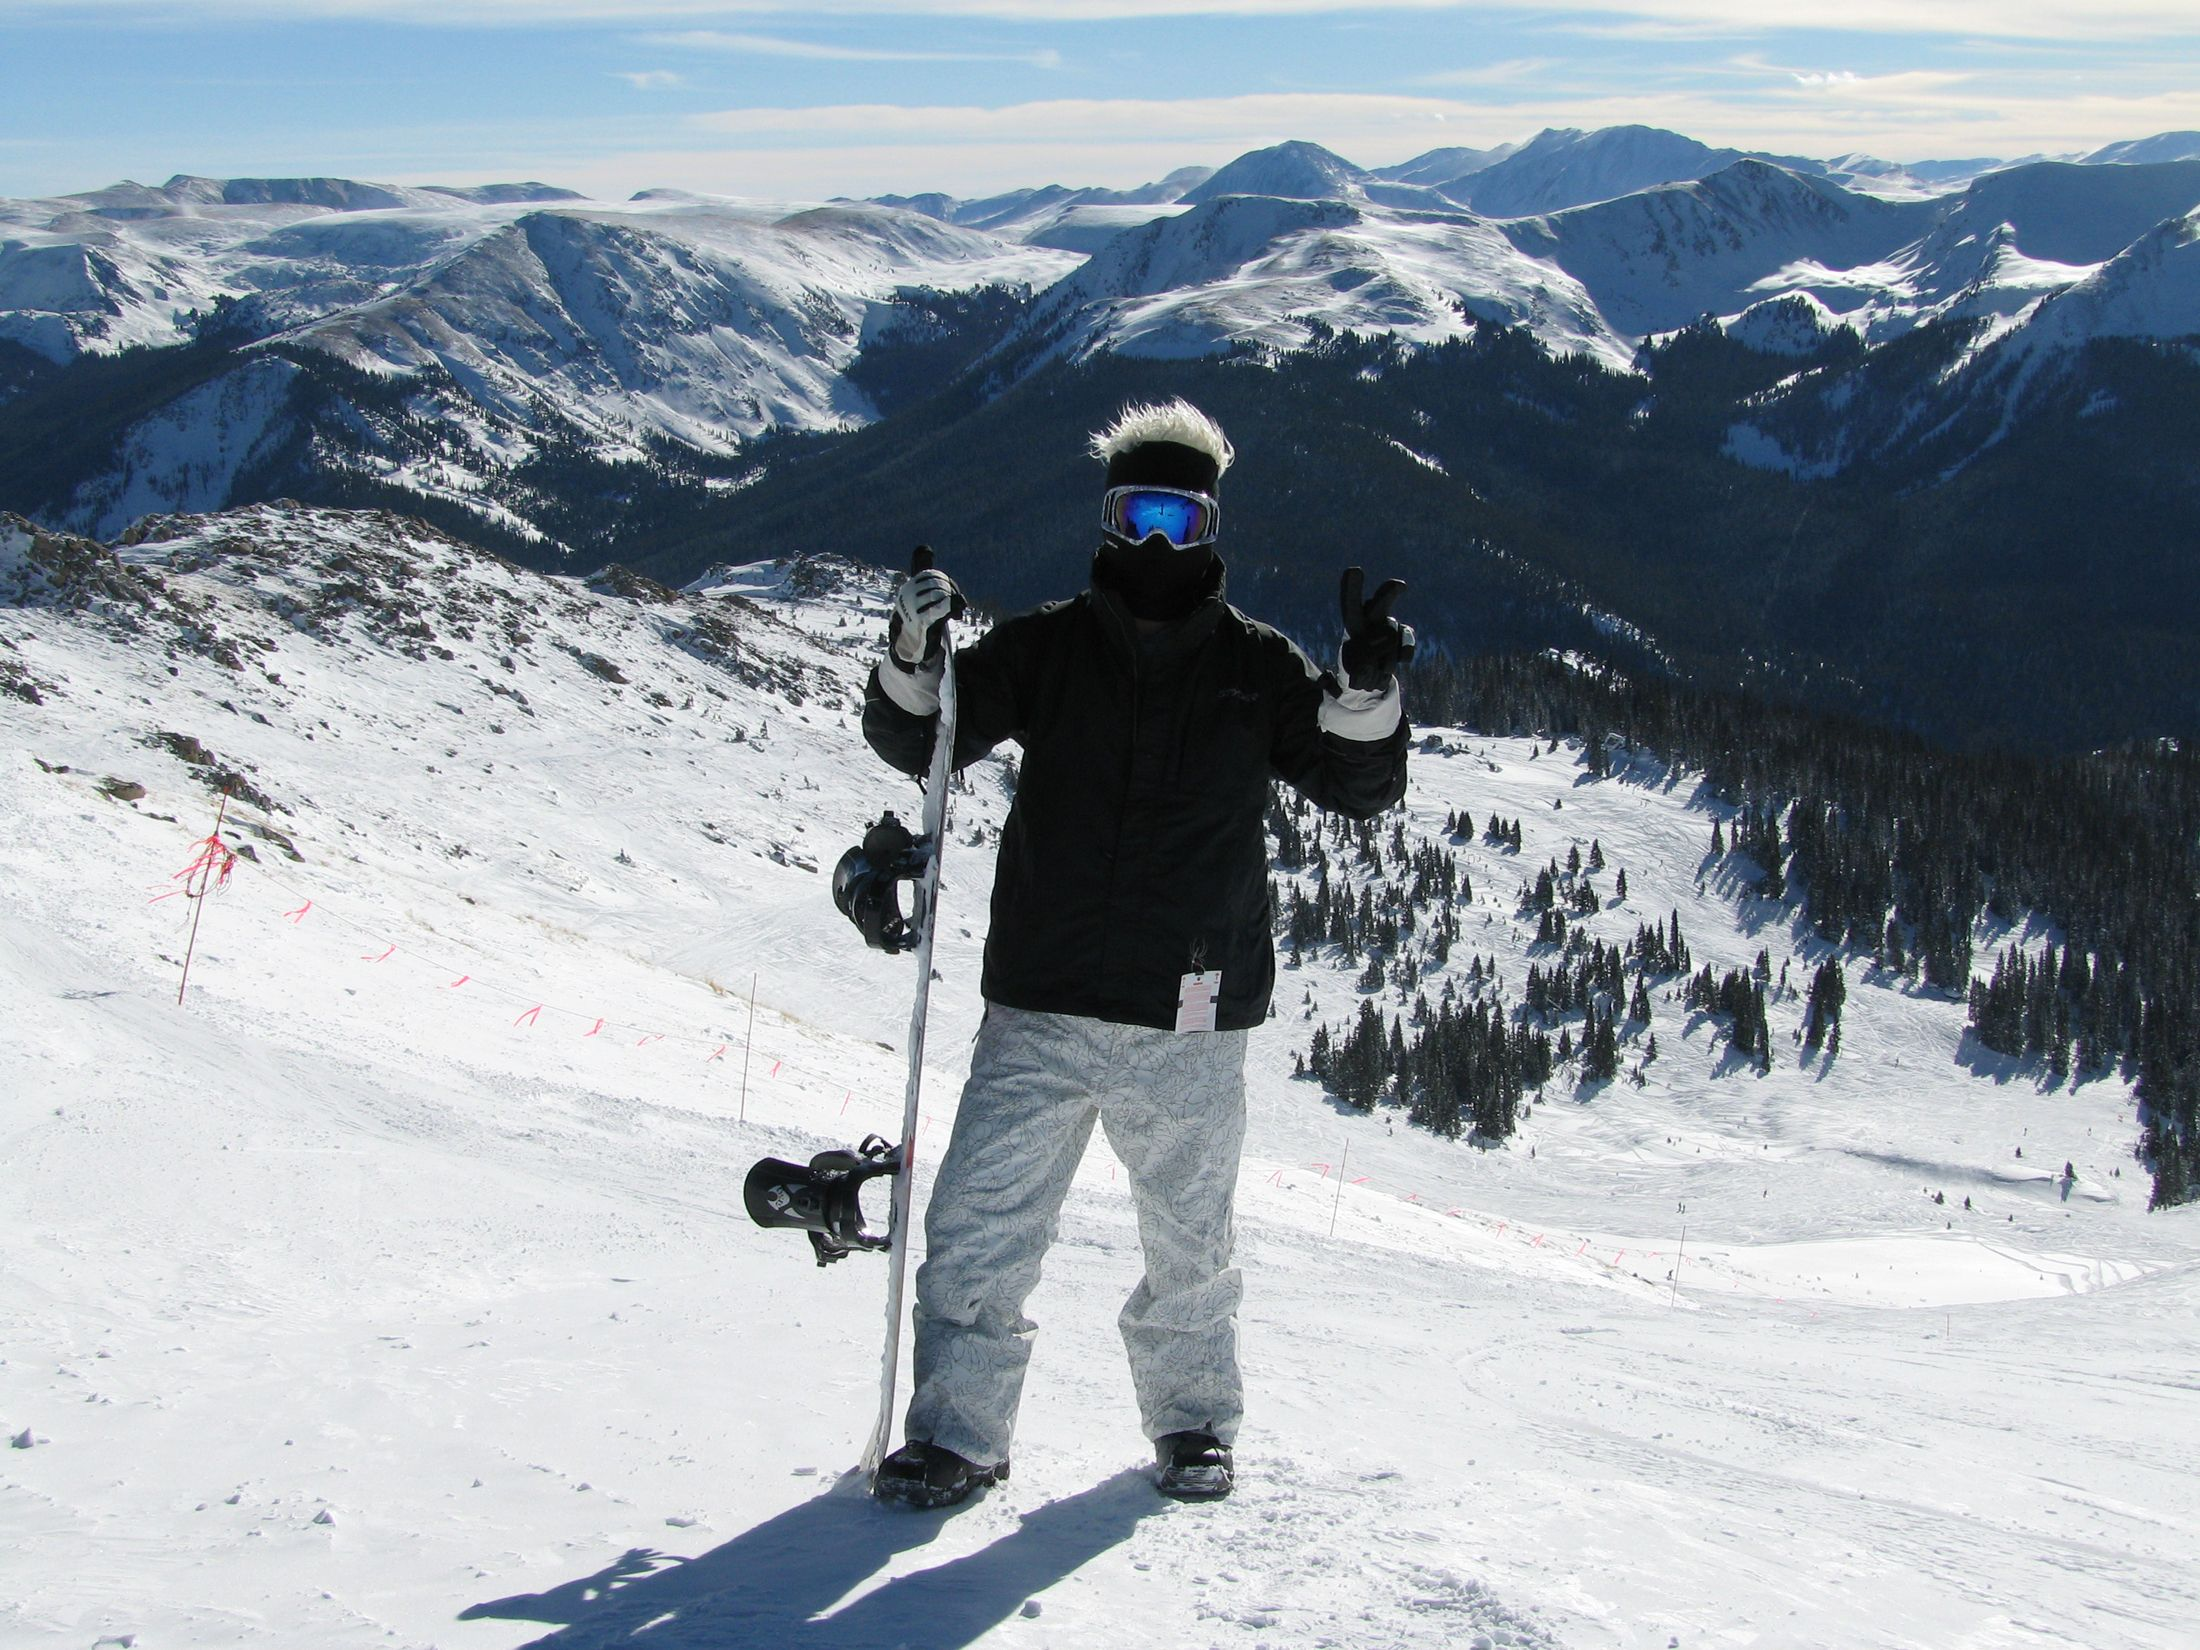 Nearest Ski Resort To Denver Colorado  Hotel Near Me